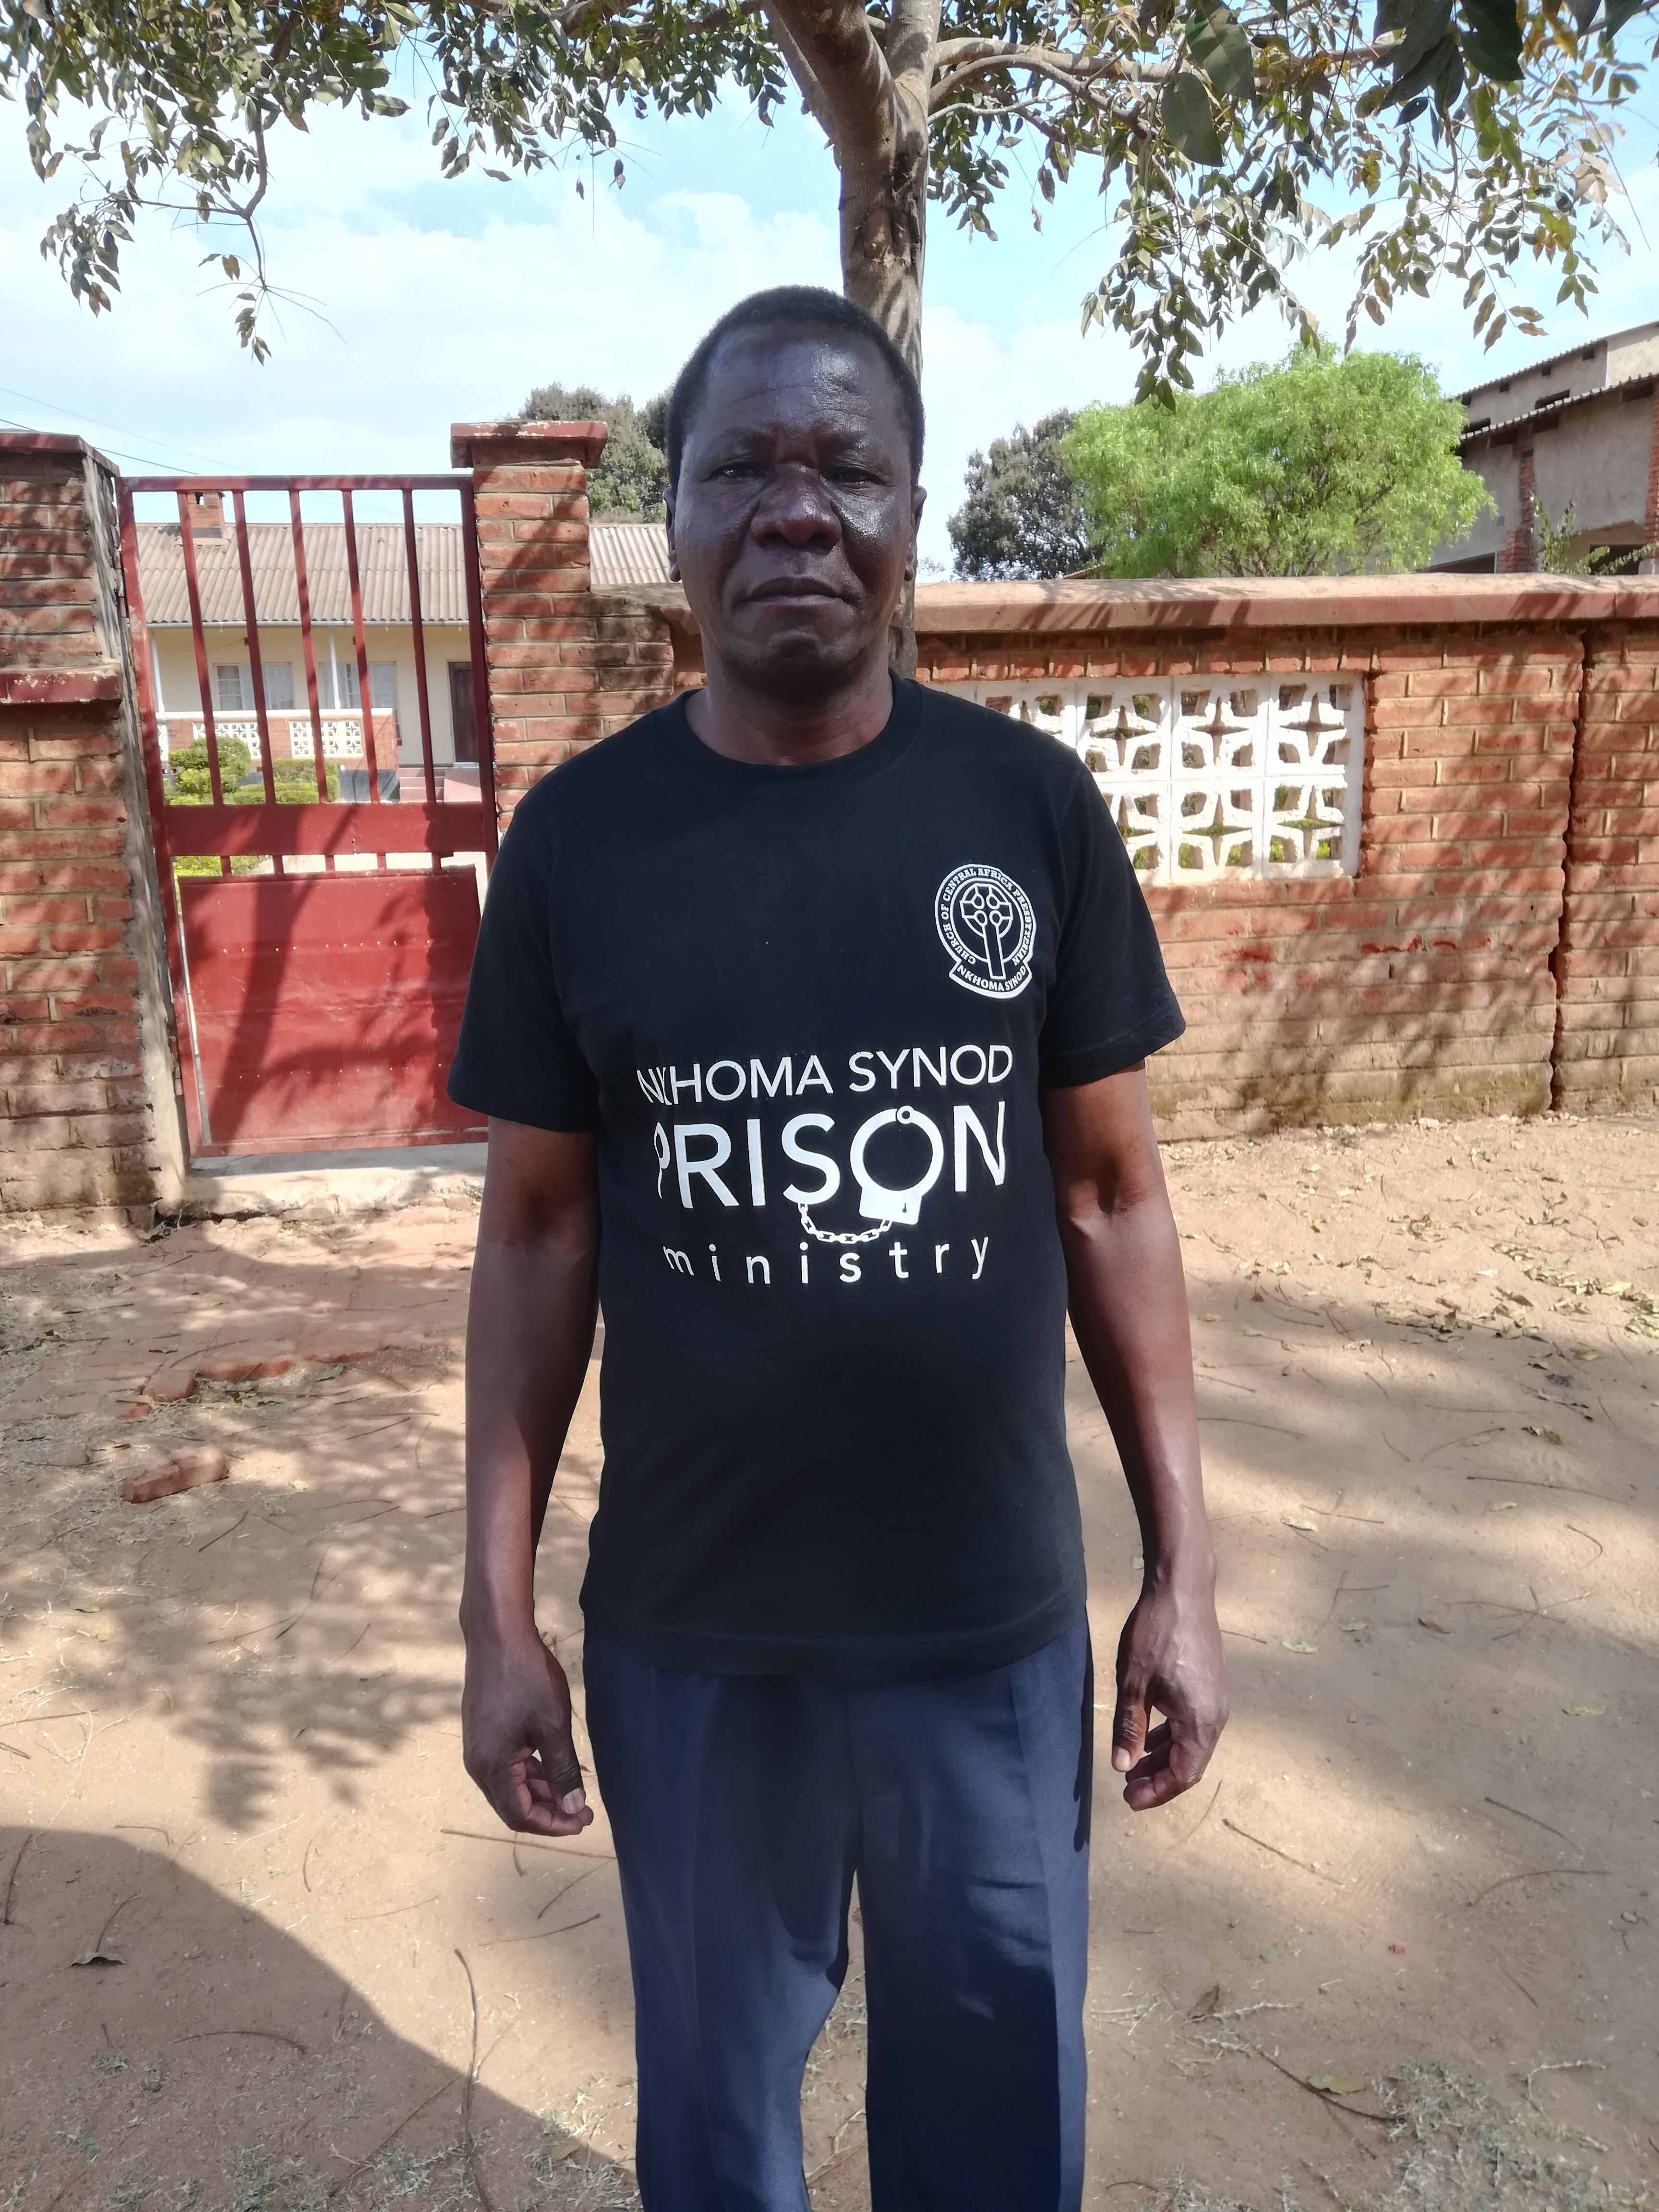 Rev. Wickliff Zulu wearing the Prison Ministry t-shirt for a visit to Kachere Youth Prison.